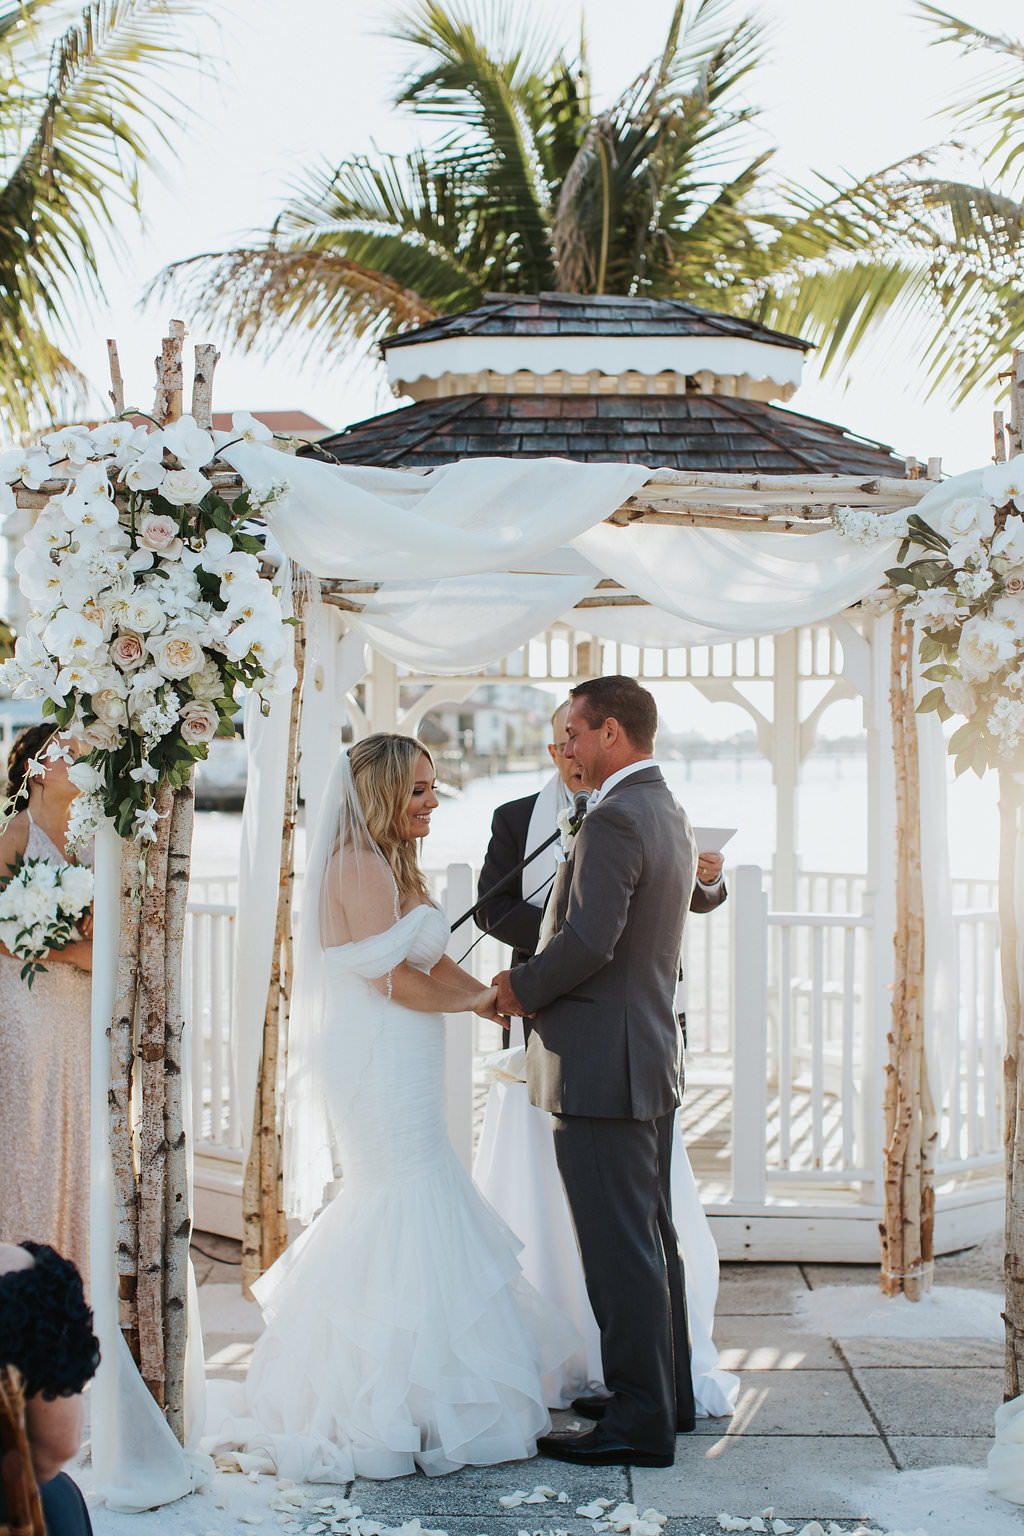 Outdoor Beach Wedding Ceremony Bride and Groom at Gazebo with Birchwood Arch, White Draping and White Florals   Waterfront Venue Isla Del Sol Yacht and Country Club